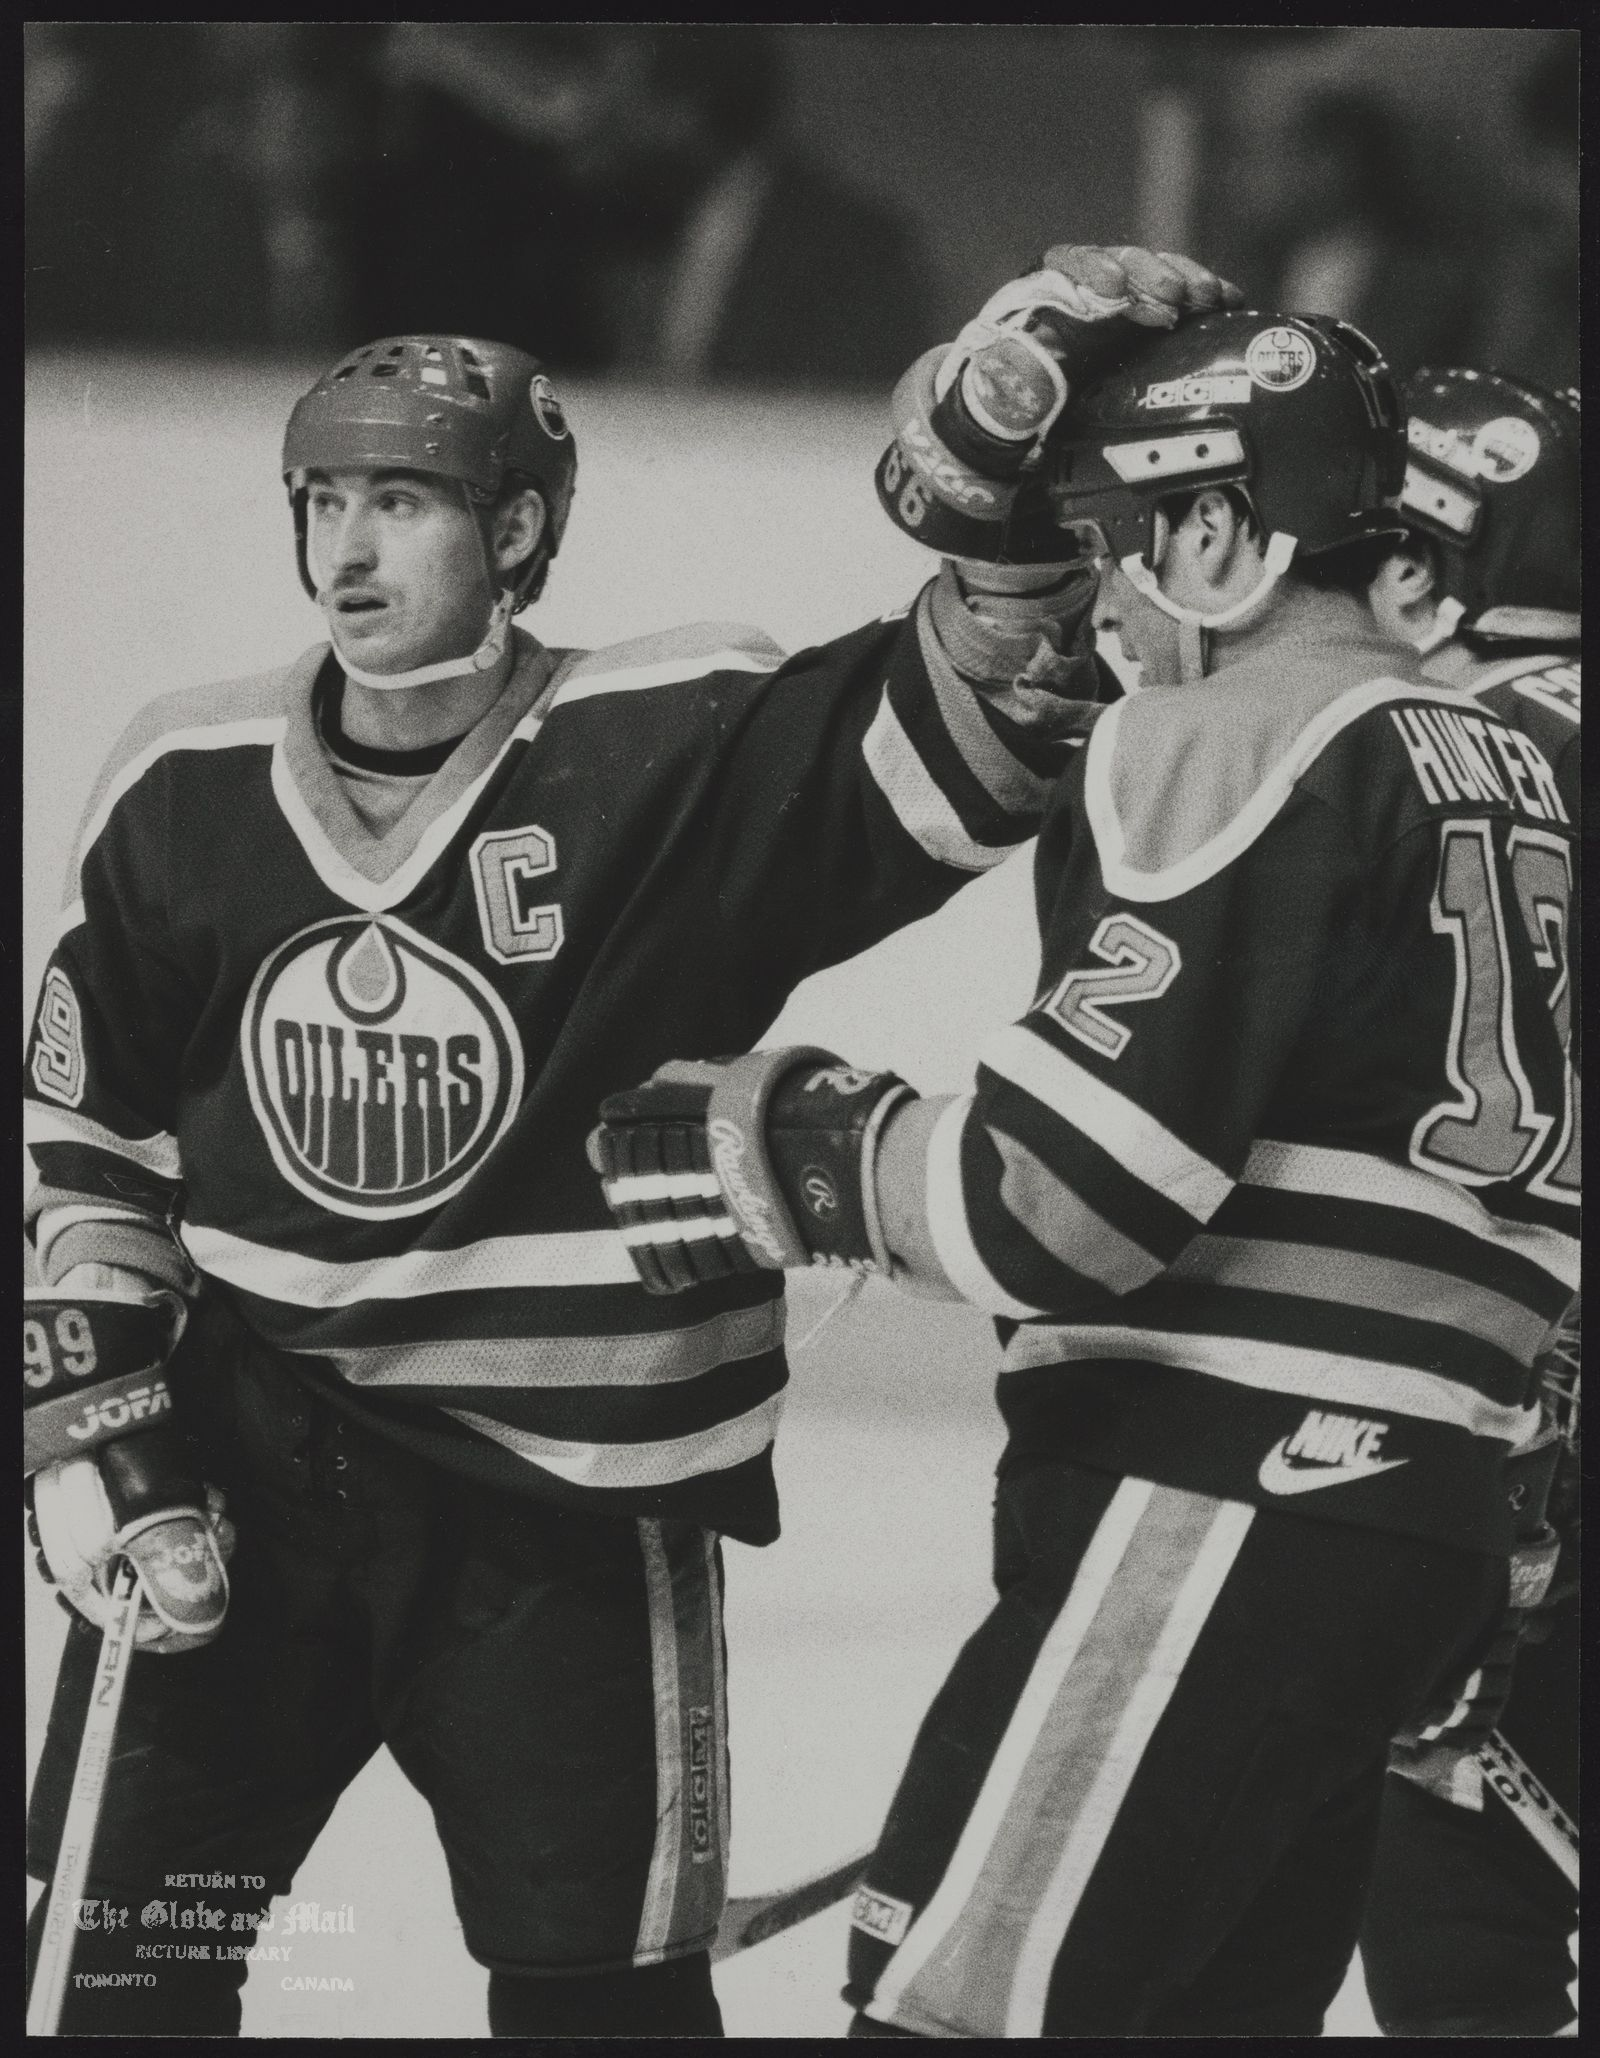 EDMONTON OILERS HOCKEY TEAM Wayne Gretzky and Oiler teammates